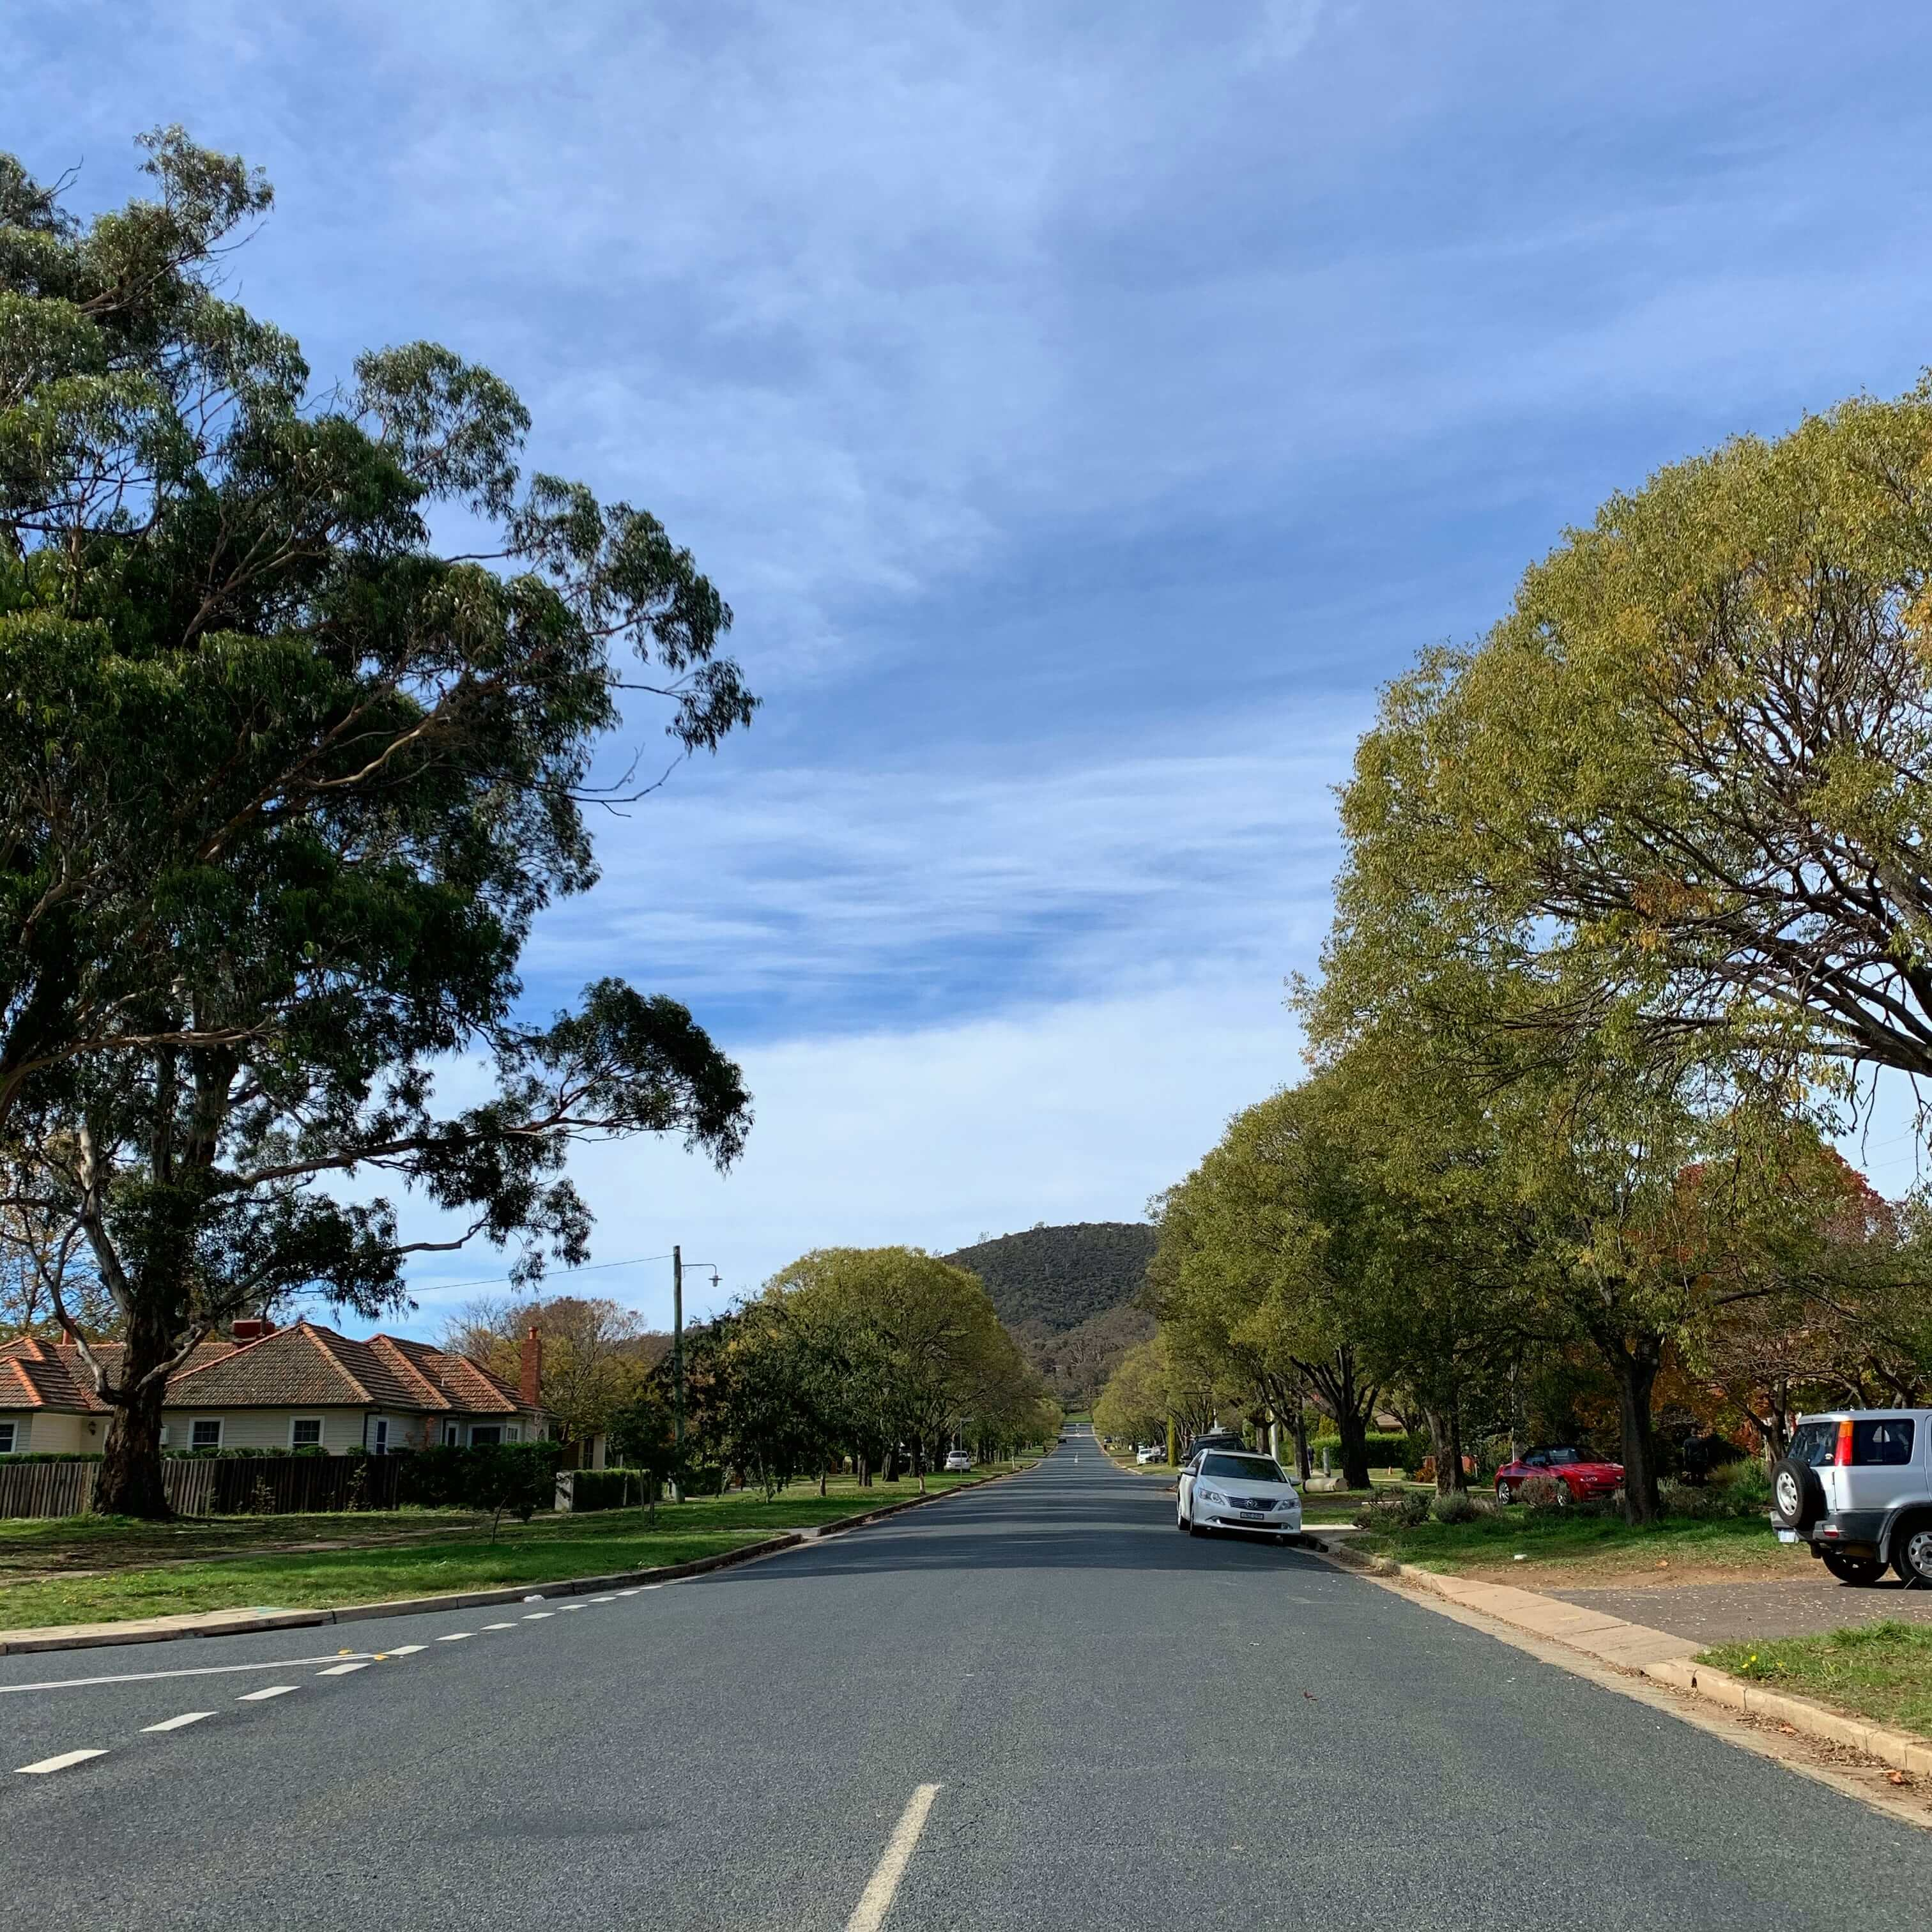 Streets of Canberra